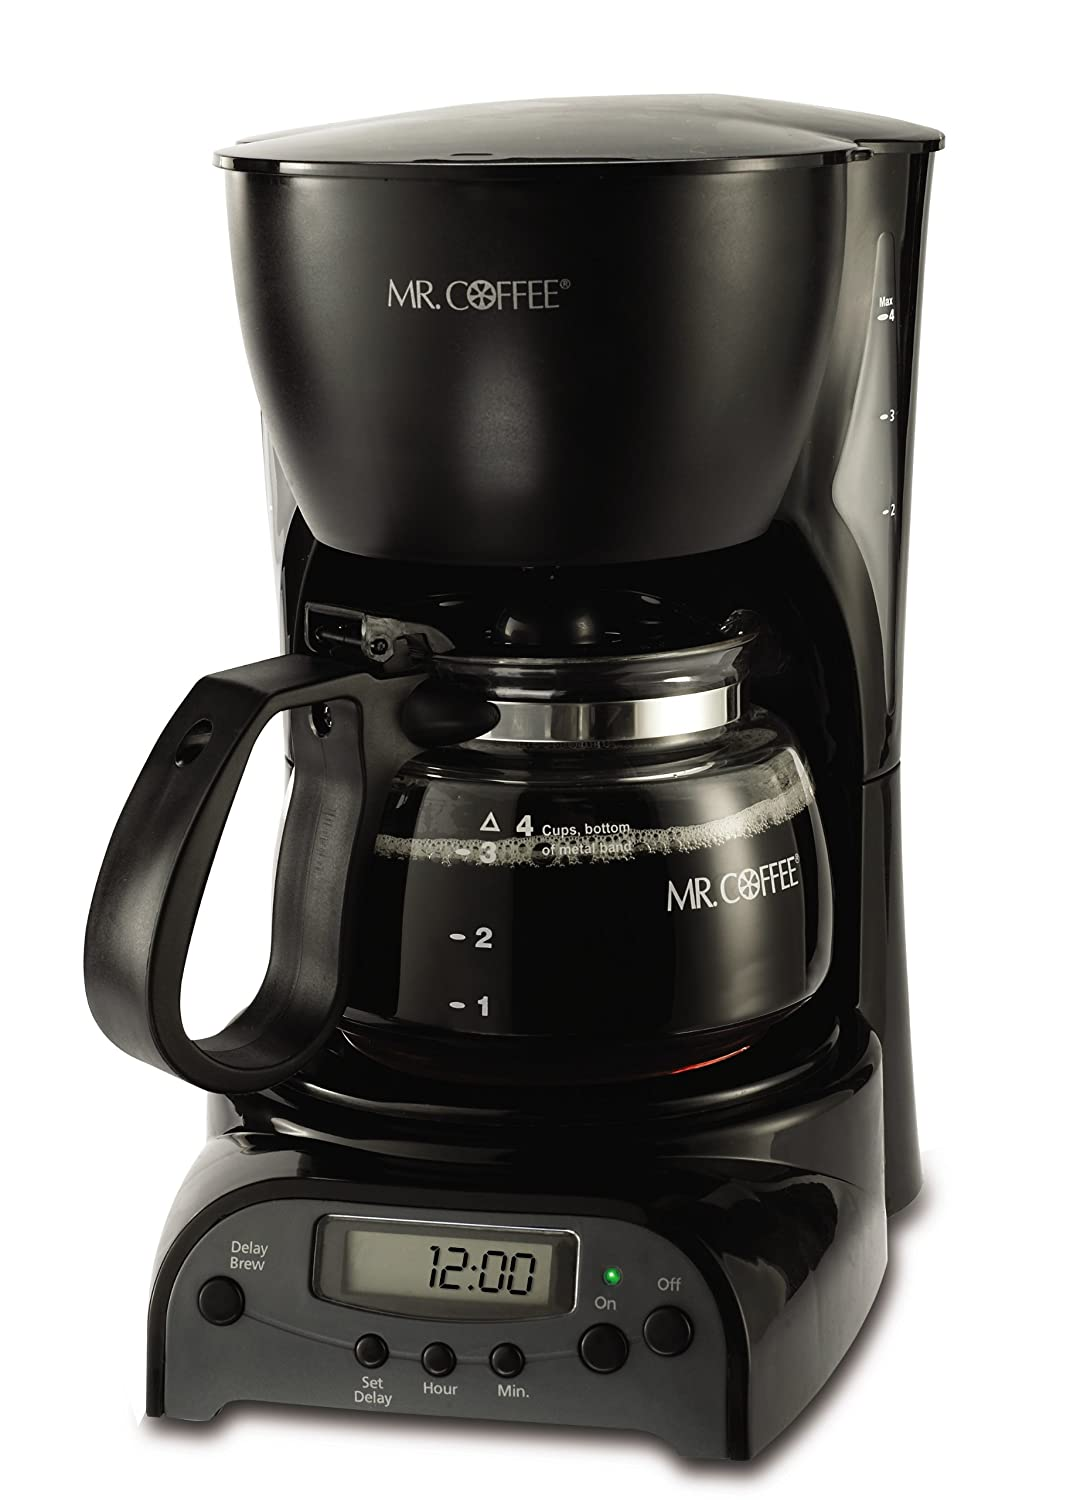 mr coffee drx5 4 cup programmable coffeemaker coffee maker brewer espresso black 72179228134 ebay. Black Bedroom Furniture Sets. Home Design Ideas